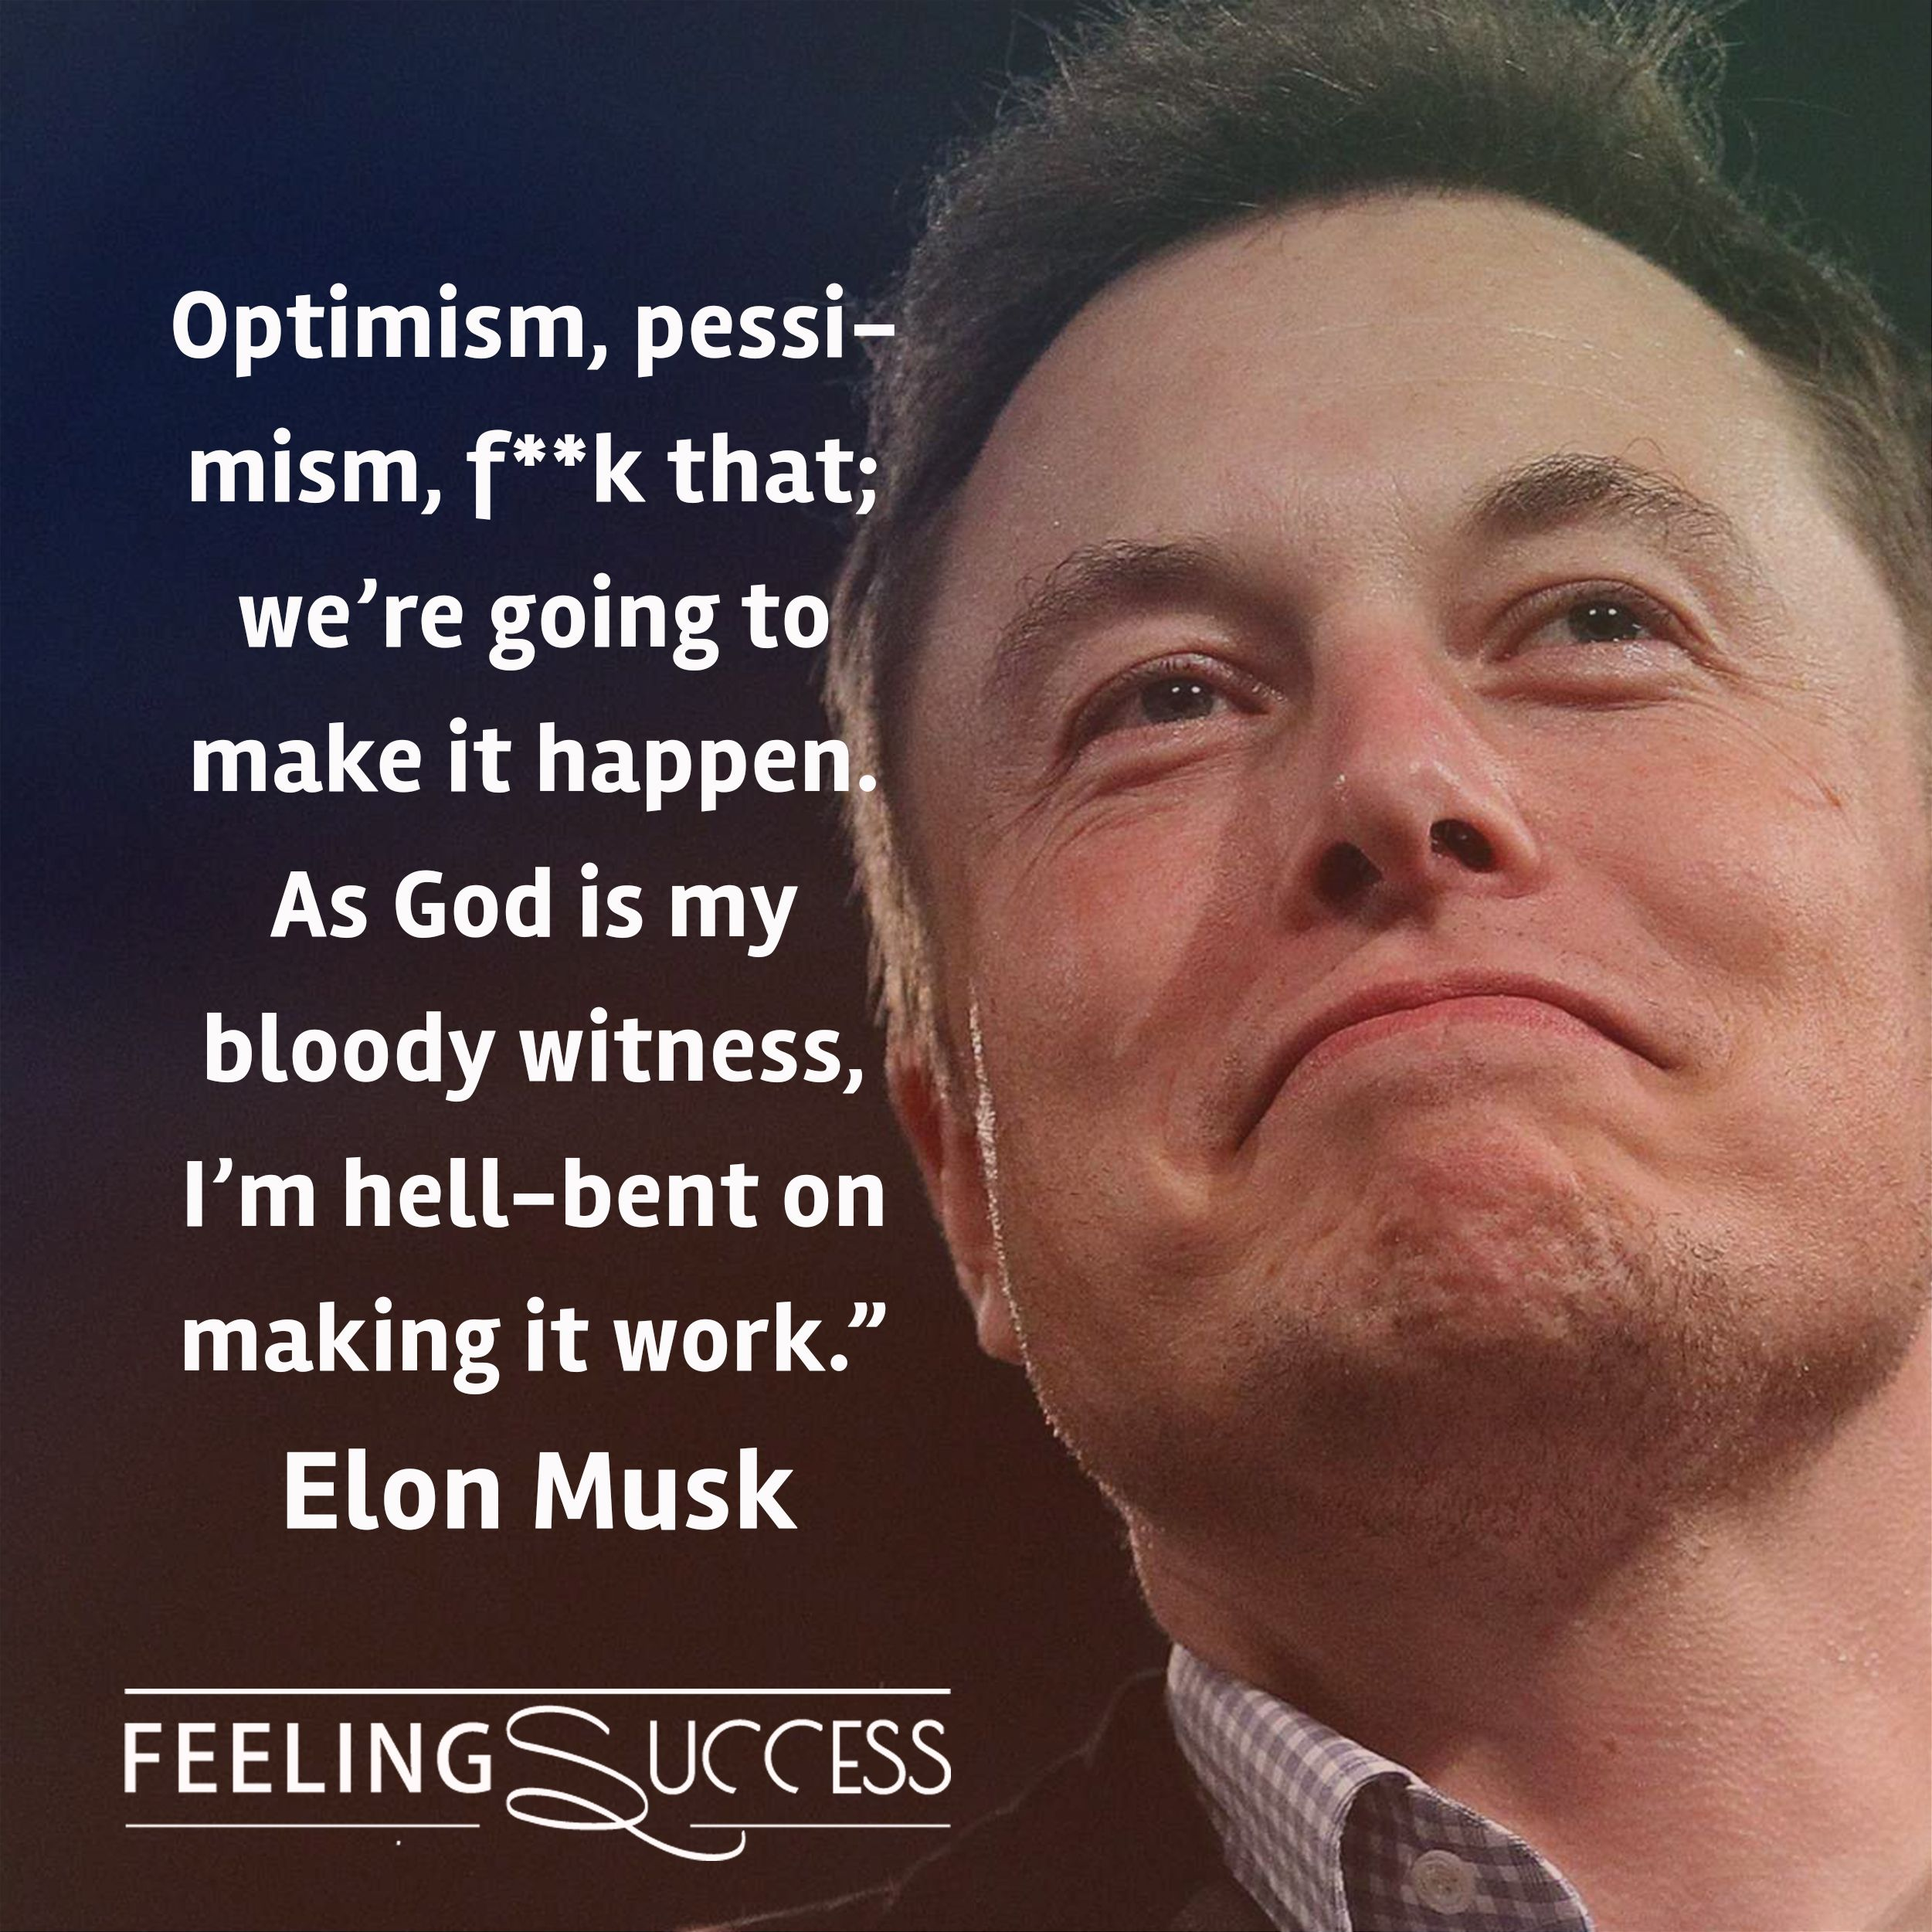 Elon Musk Quotes Elon Musk Quotes To Spark Proactivity And Innovation Read More